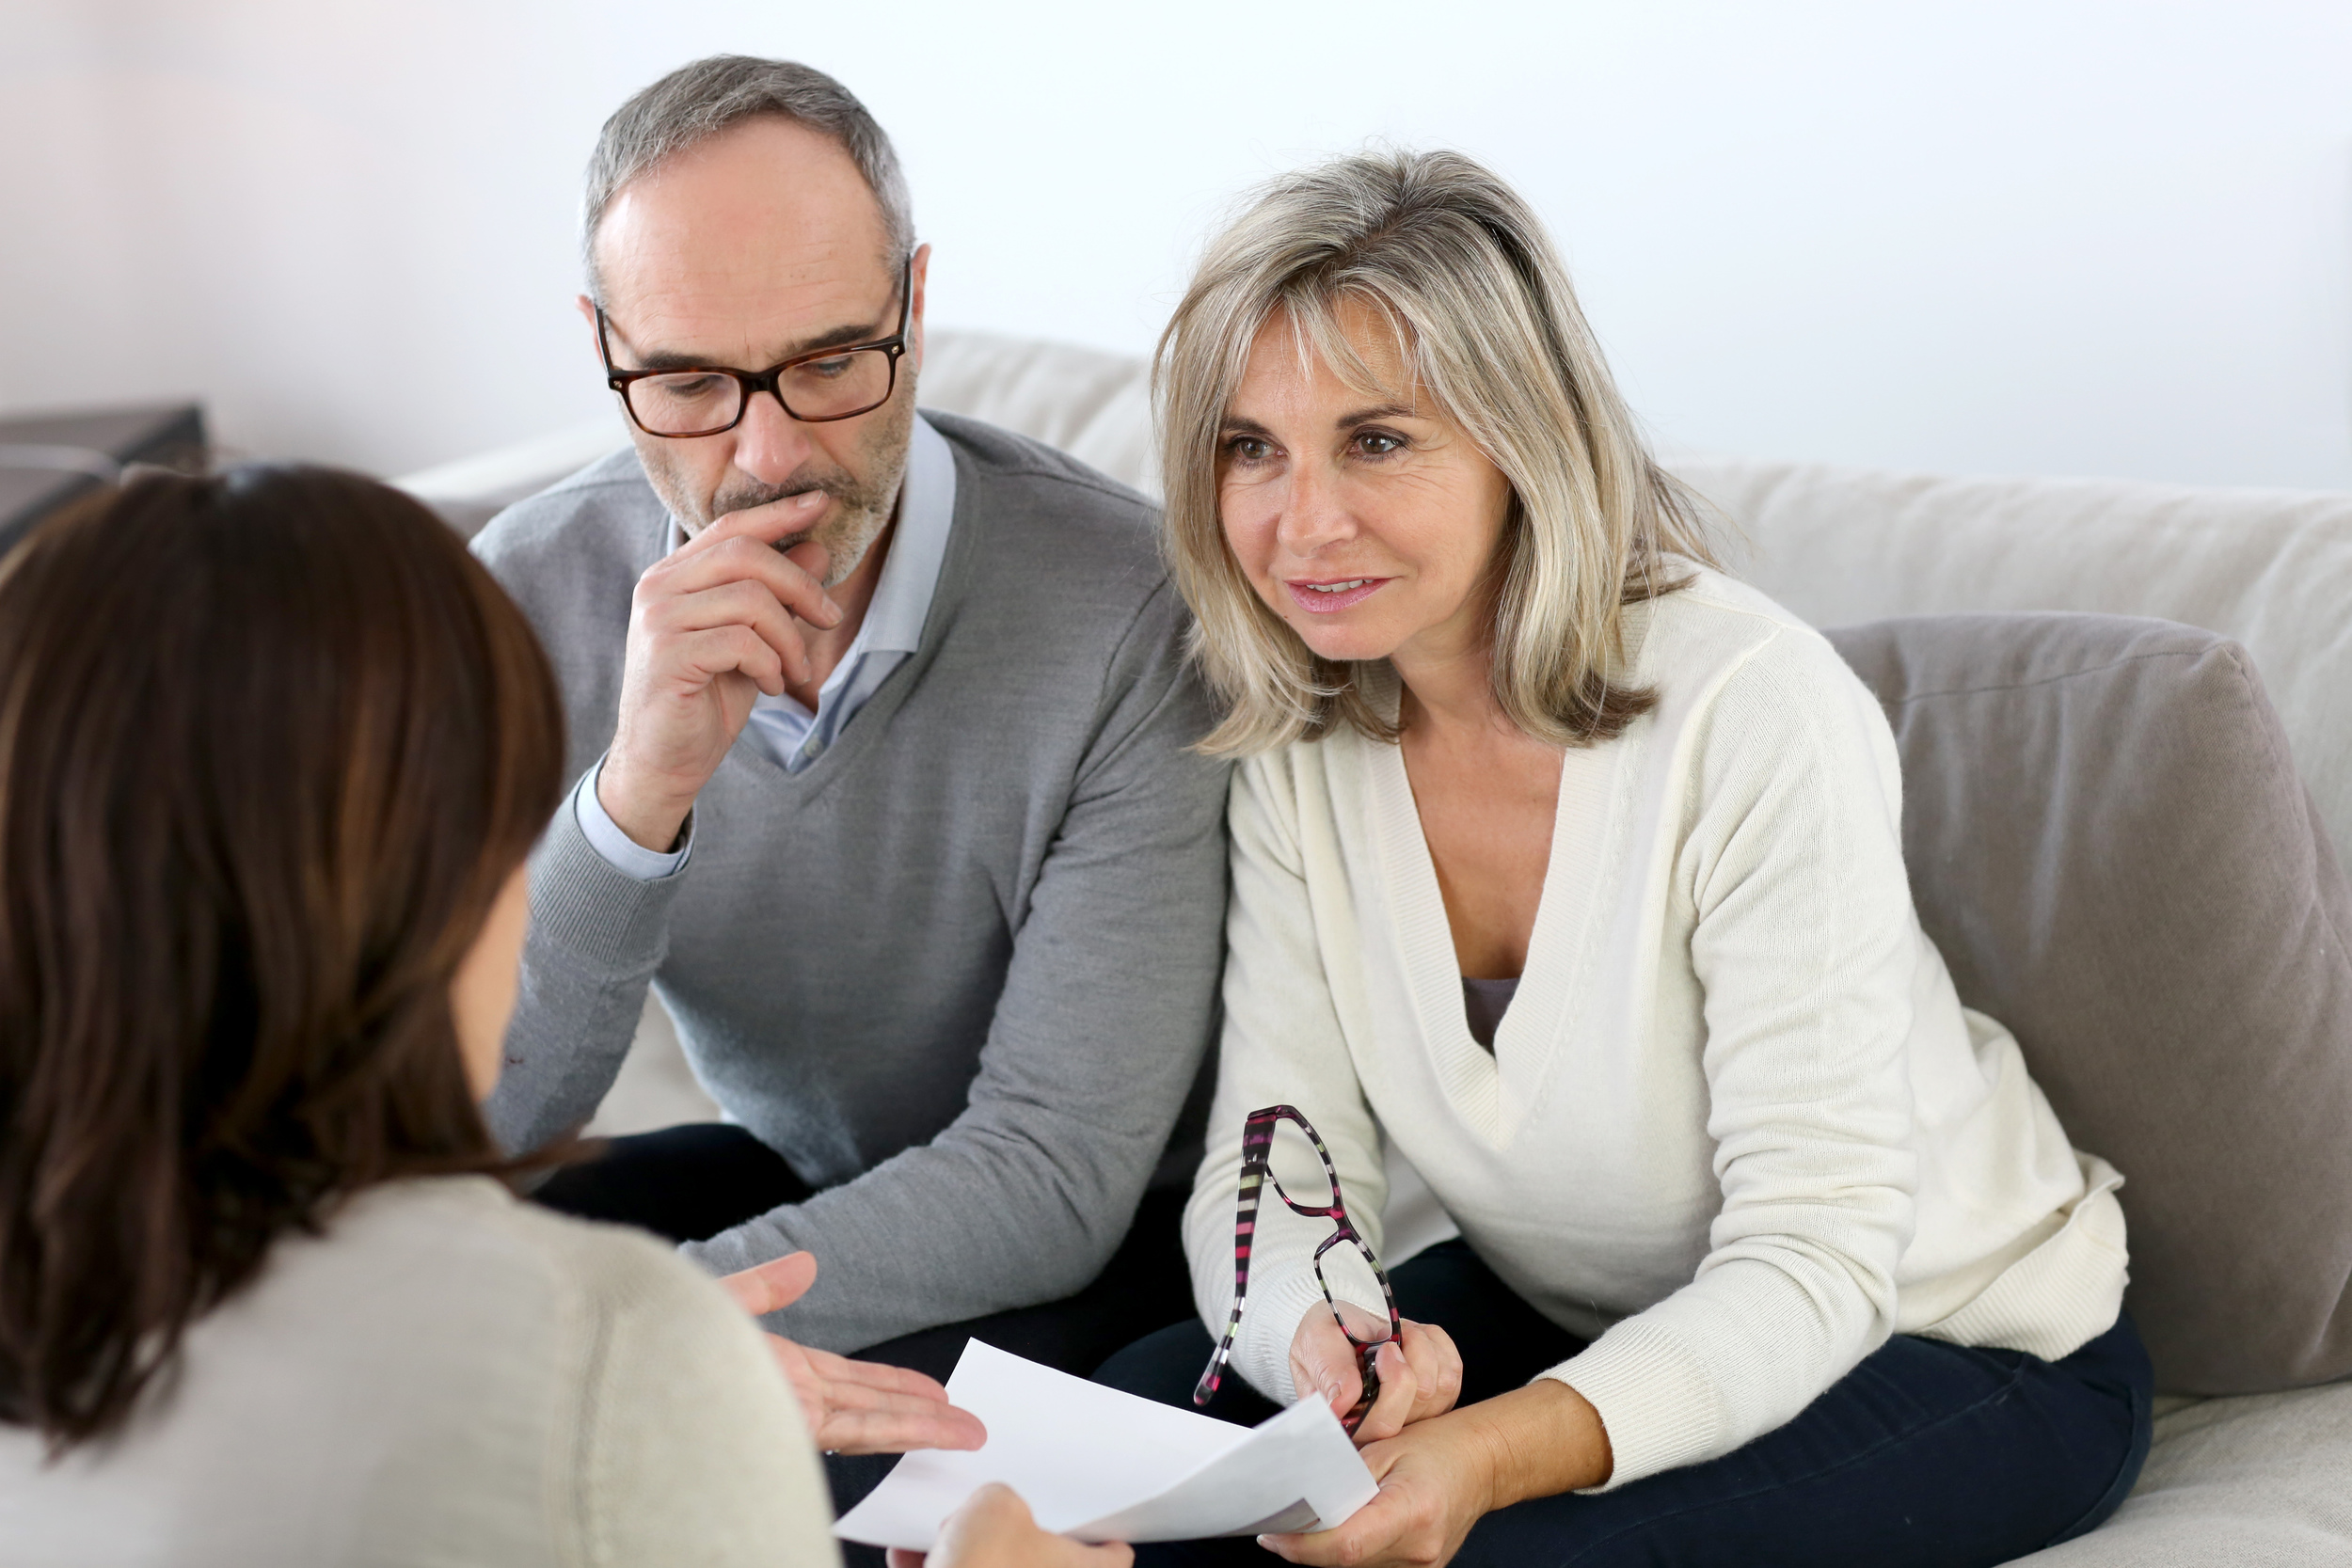 counseling-services